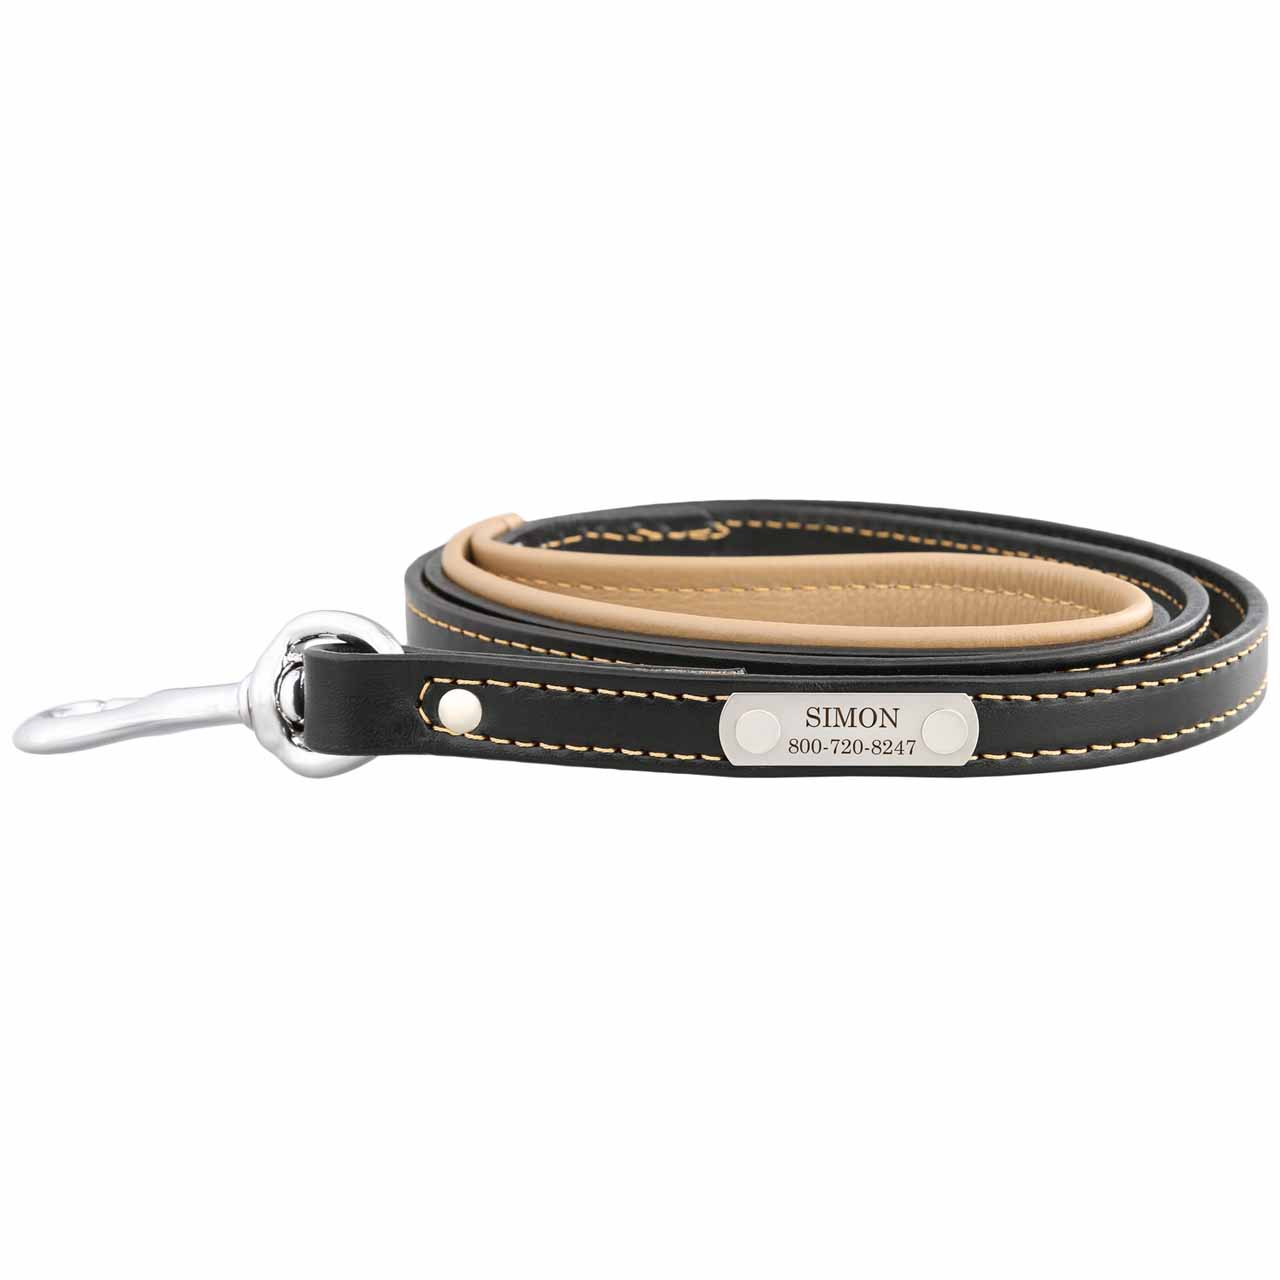 Padded Leather Leash with Nameplate - Black with Tan